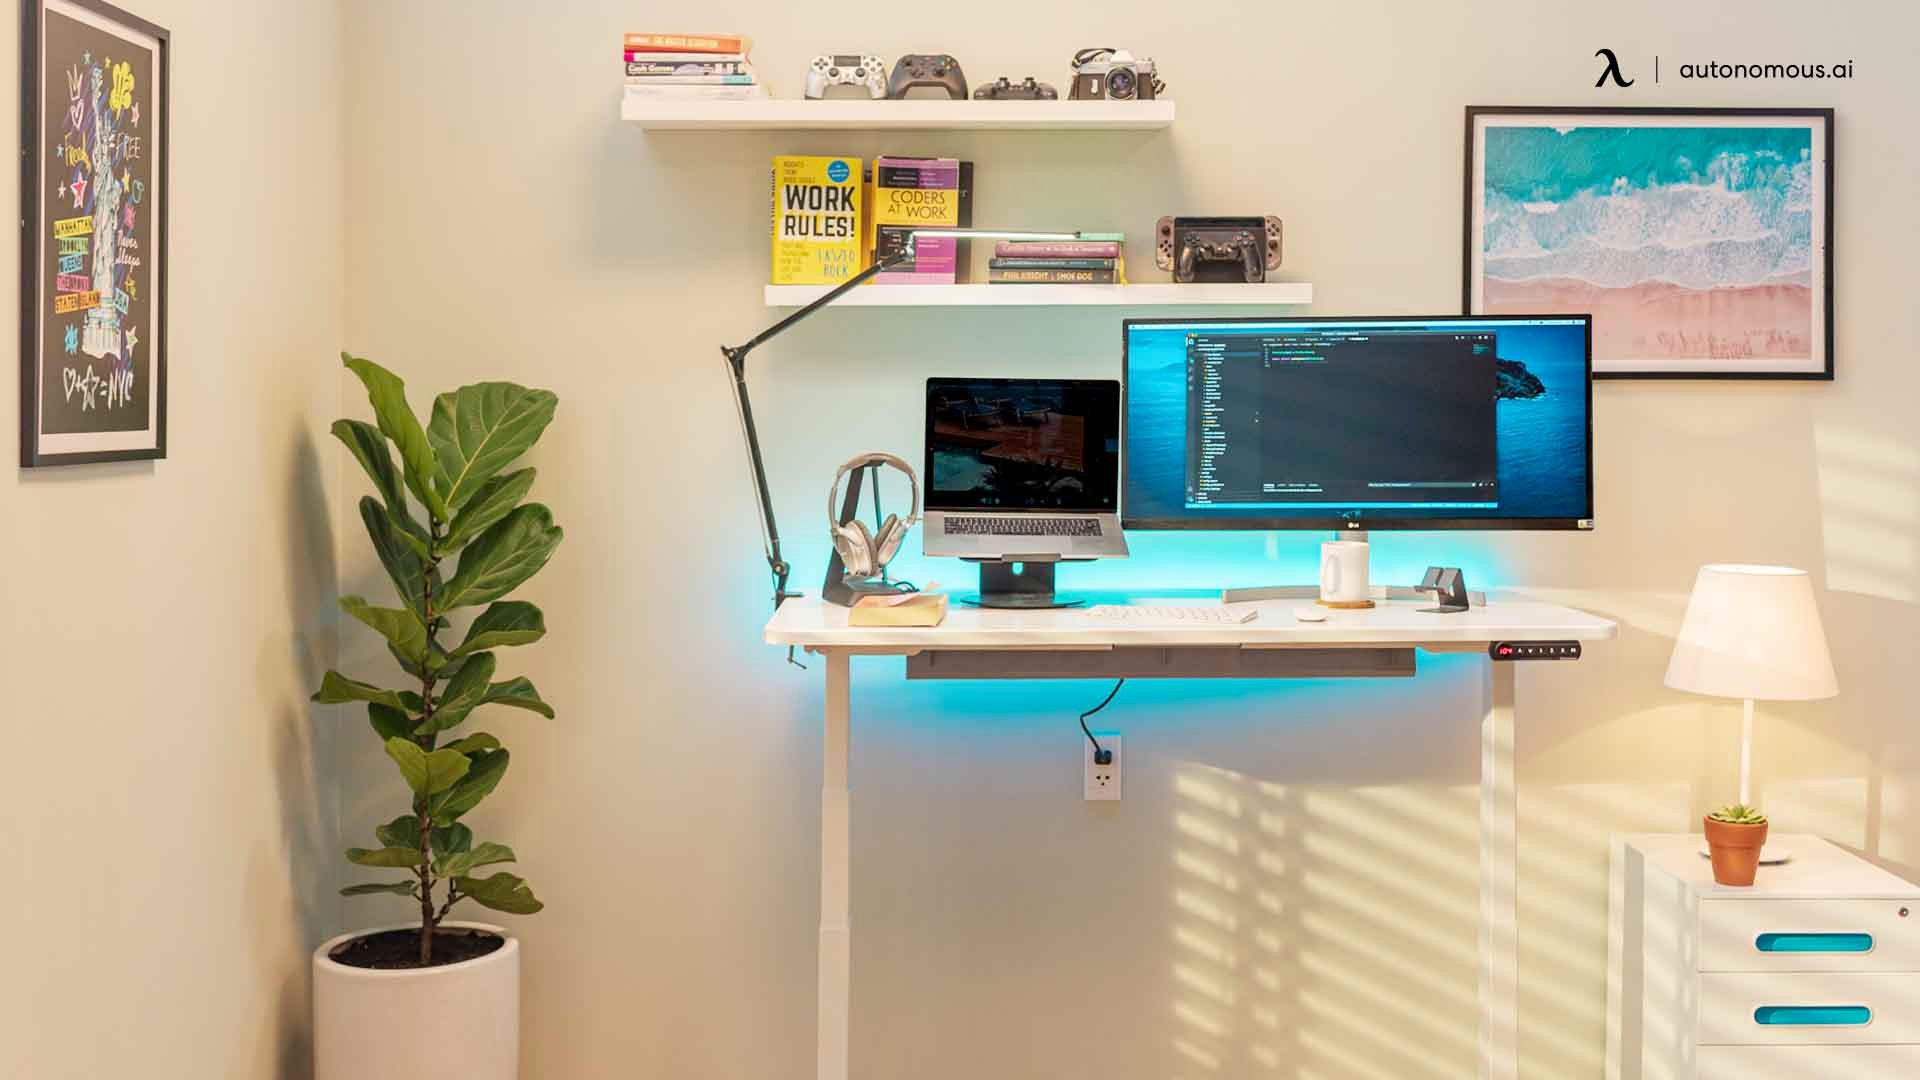 Why Use an Automated Standing Desk like the SmartDesk 2 from Autonomous